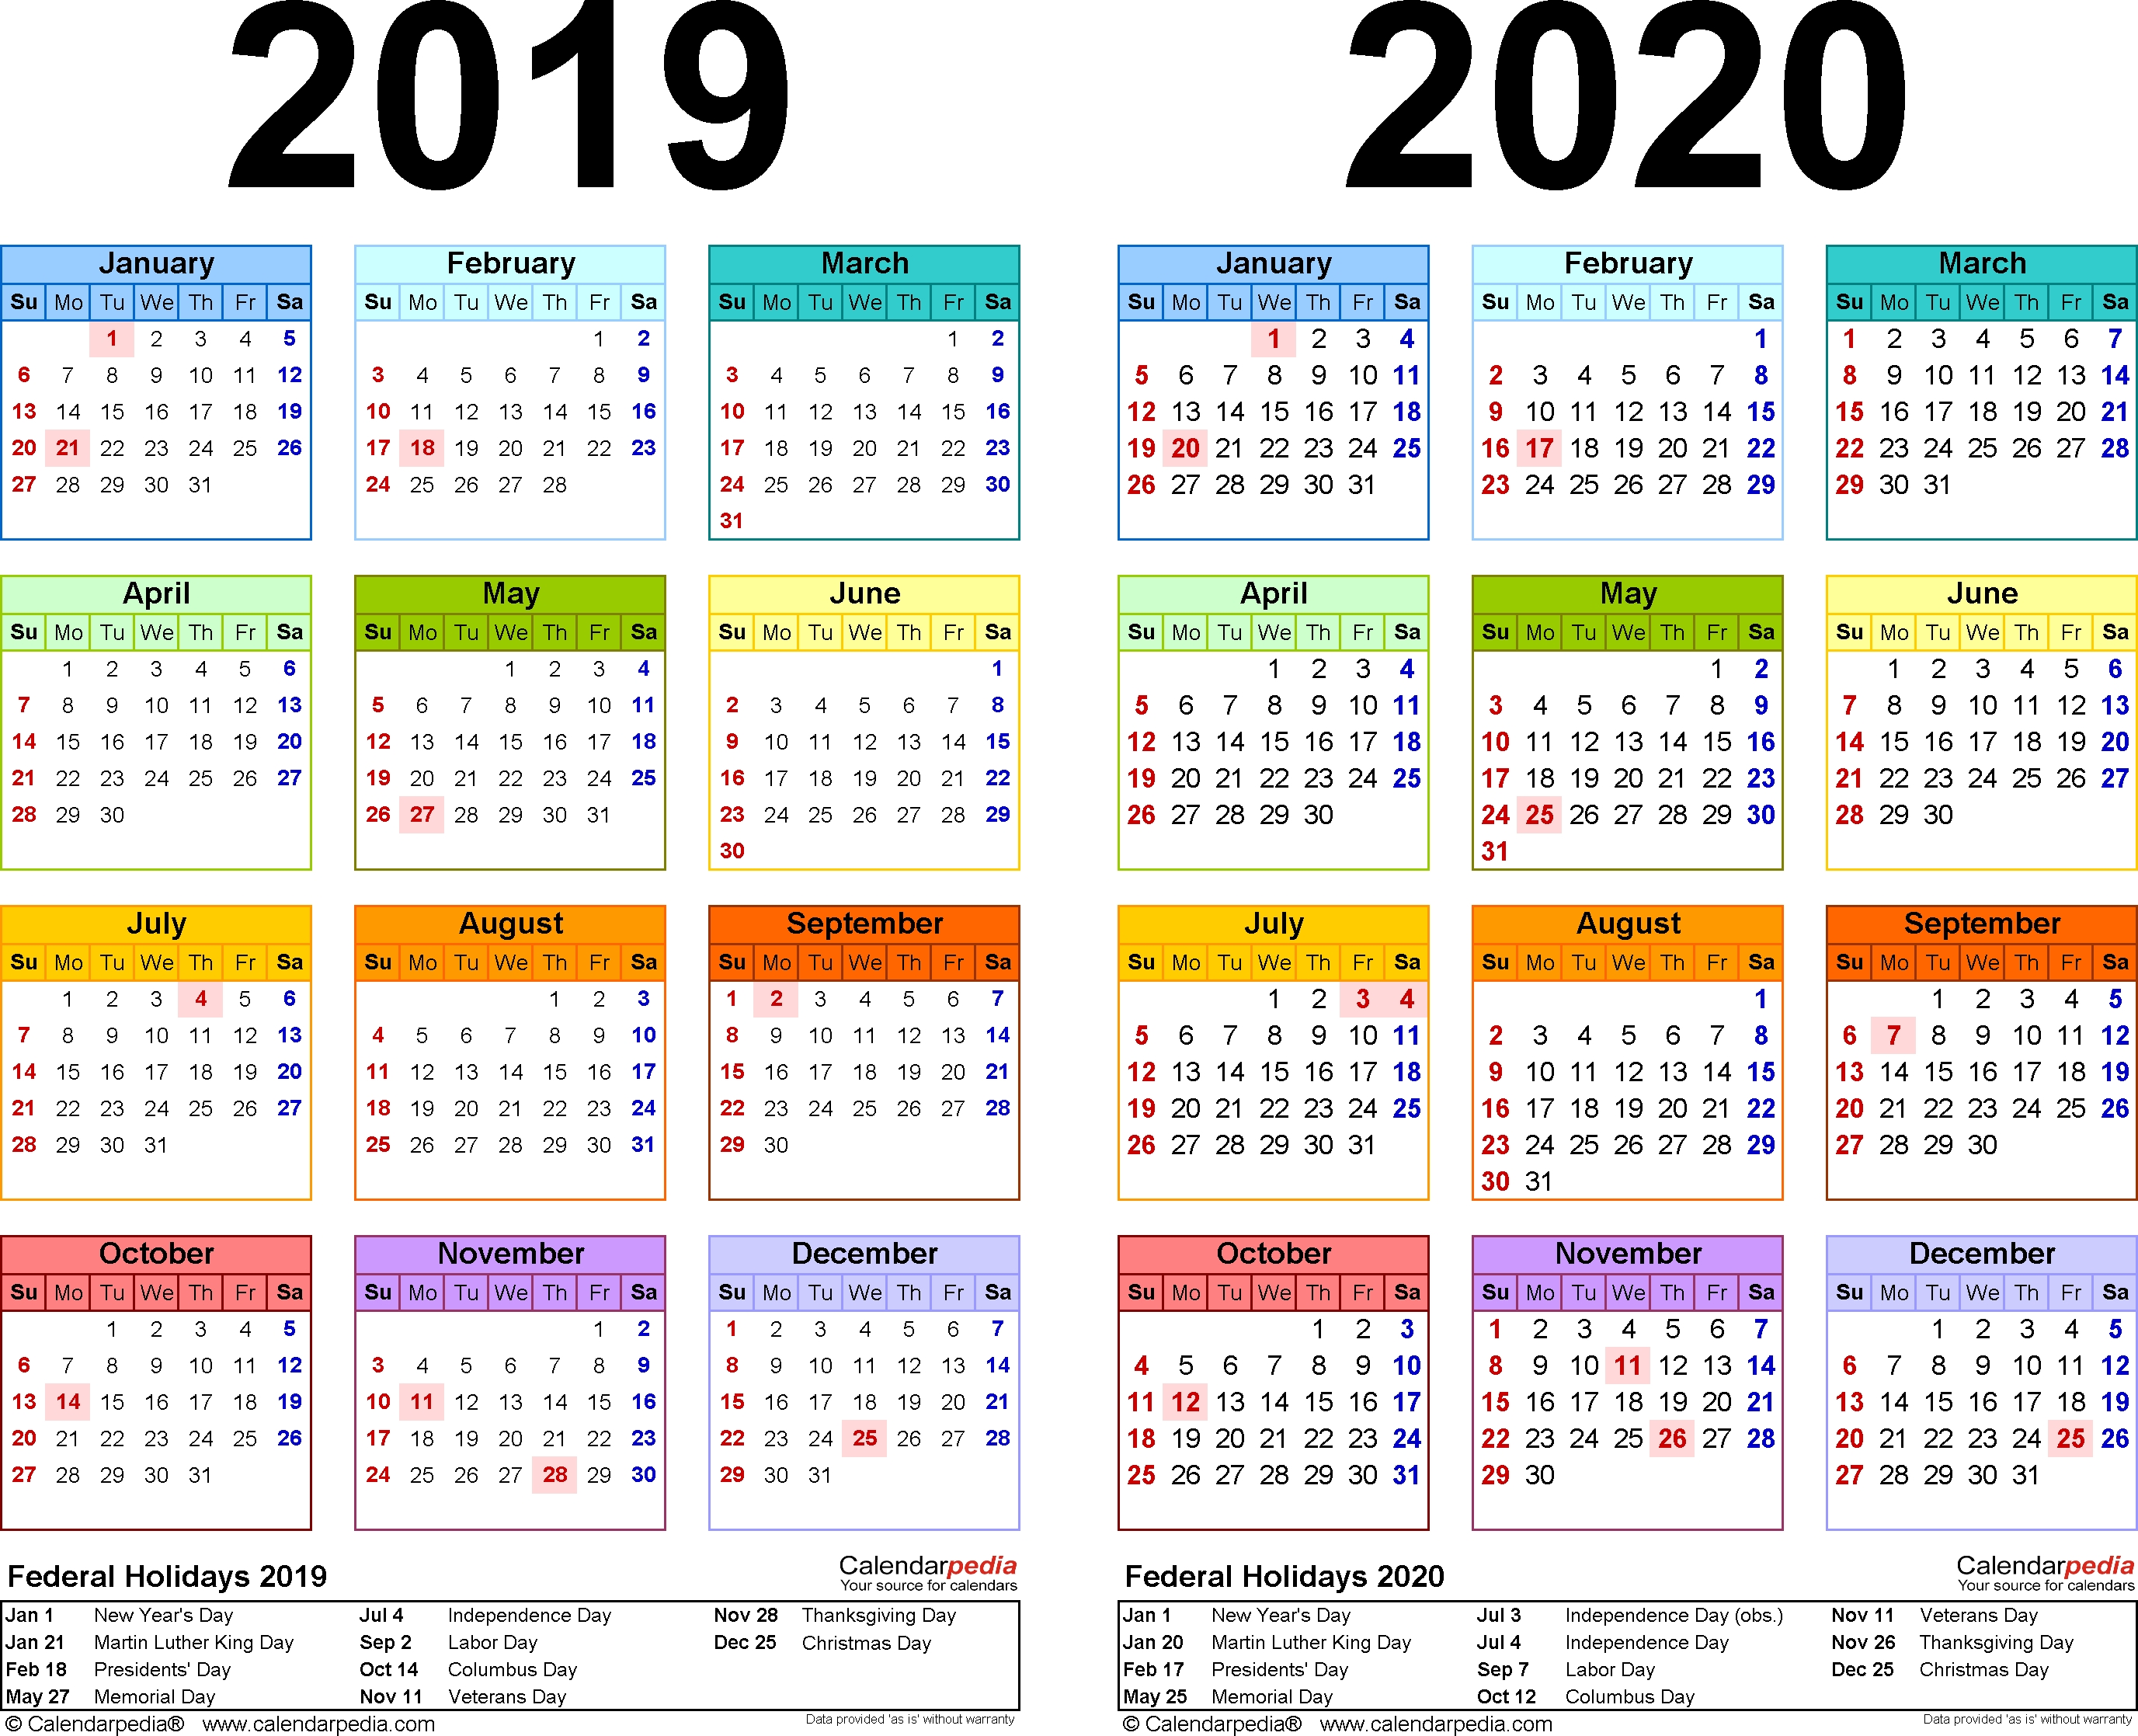 2019-2020 Calendar - Free Printable Two-Year Word Calendars pertaining to Printable Calendar 2019 2020 Write On